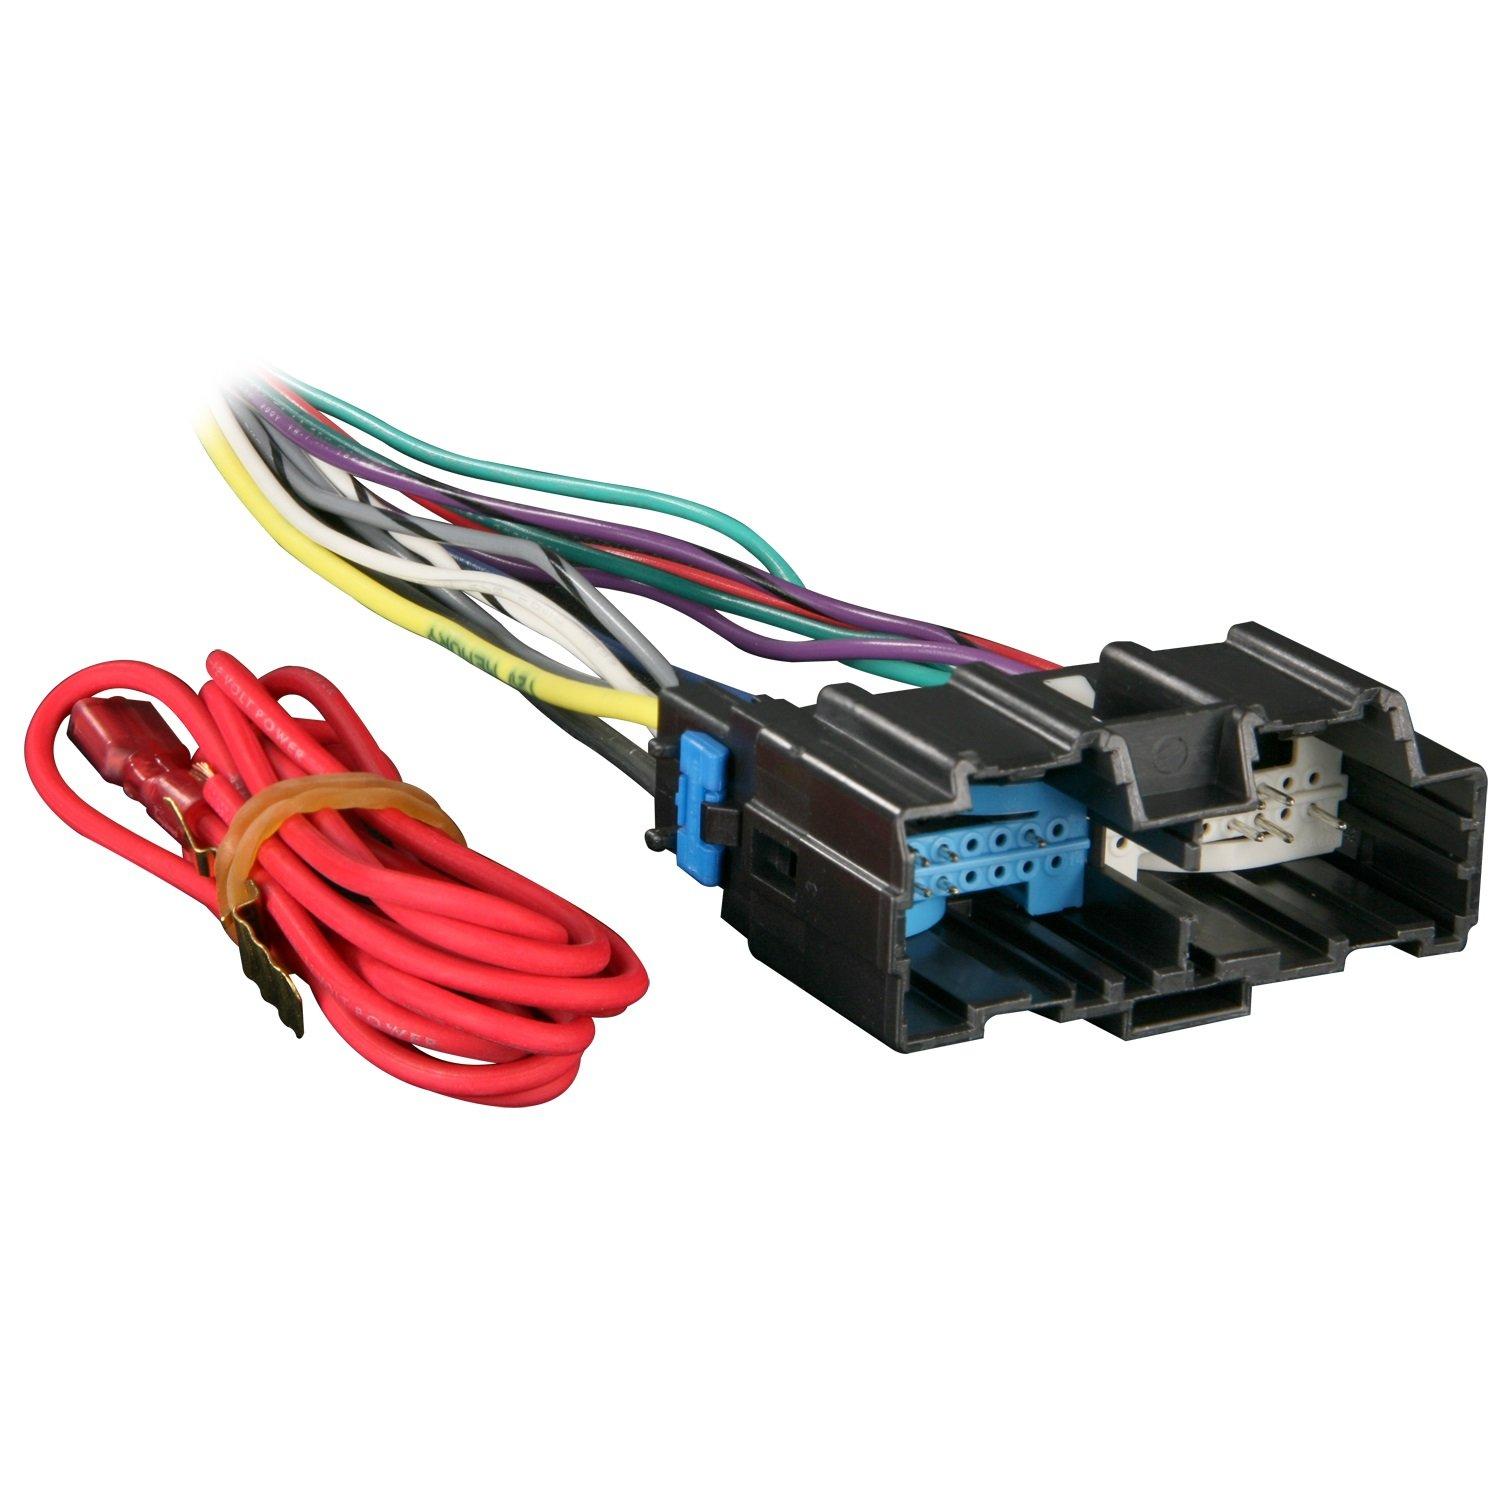 71ZzH dyg7L._SL1500_ amazon com metra 70 2105 radio wiring harness for impala monte Wire Single Life 4 Harnesstionships at nearapp.co